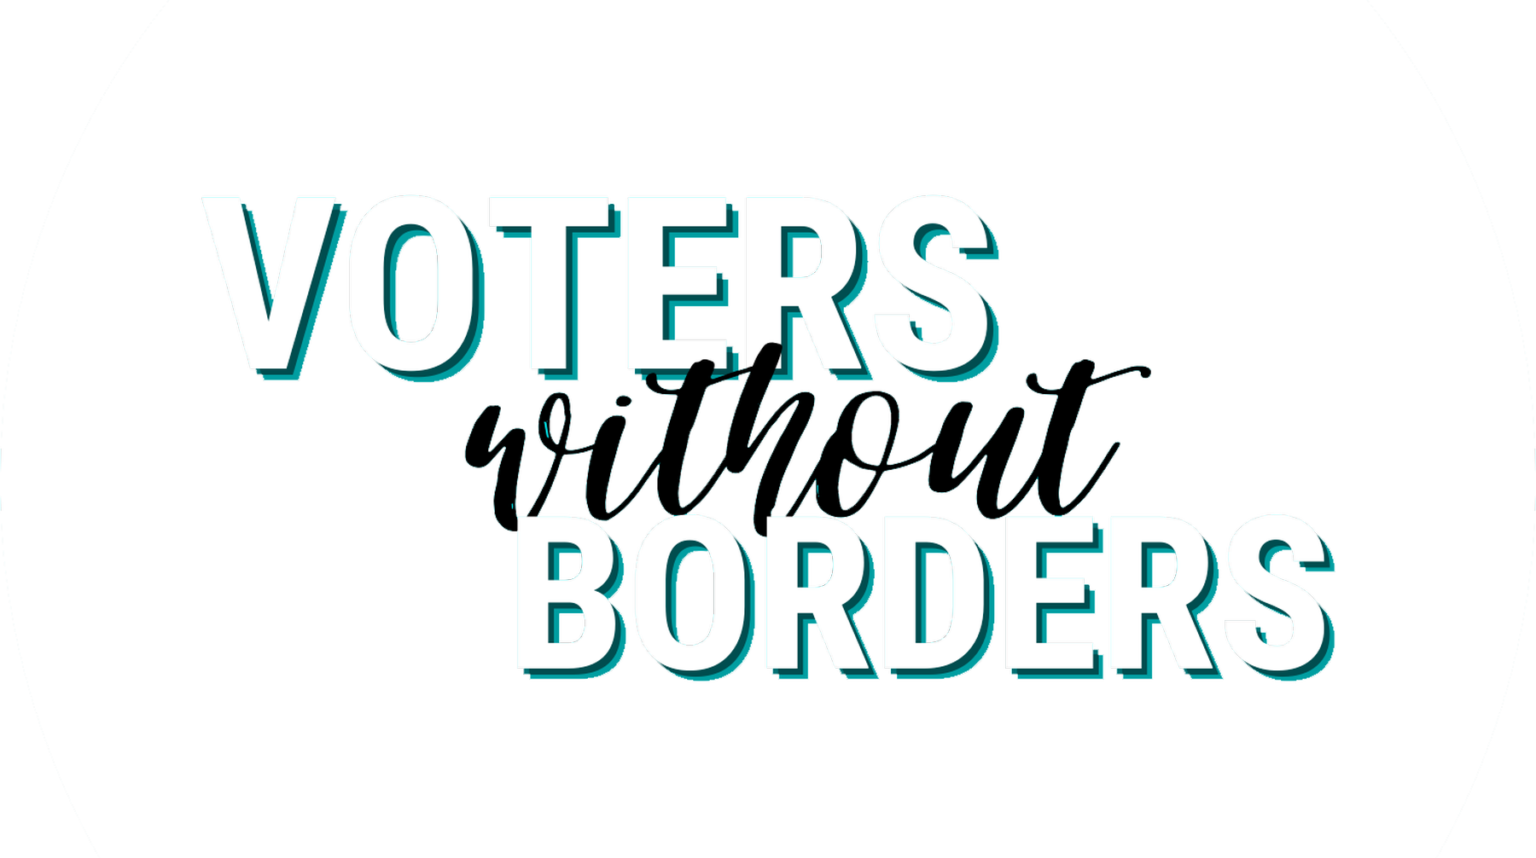 Voters Without Borders